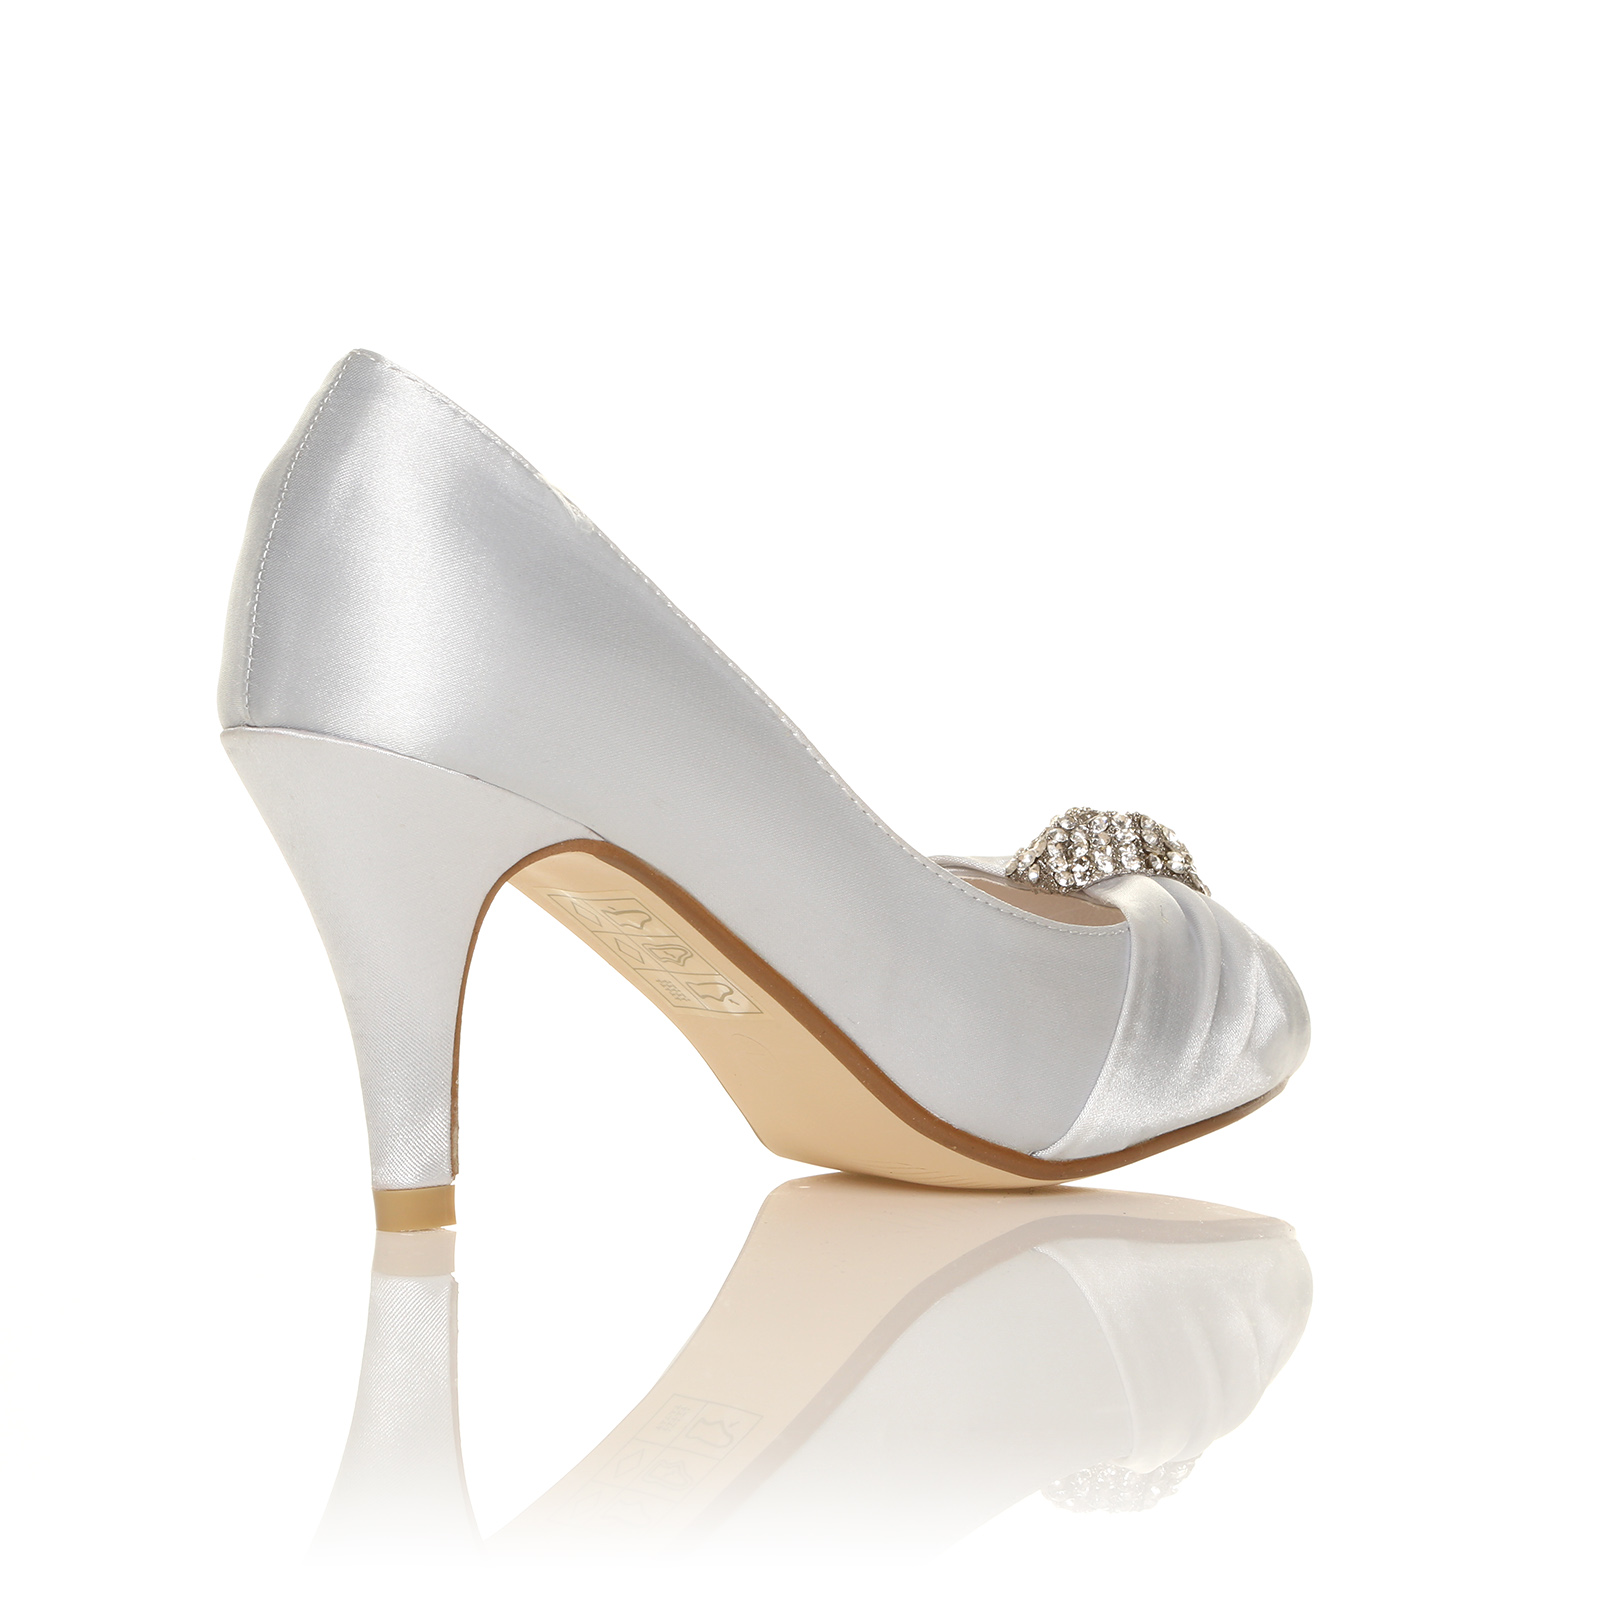 LADIES IVORY WHITE SATIN LOW HEEL BRIDAL PROM PARTY